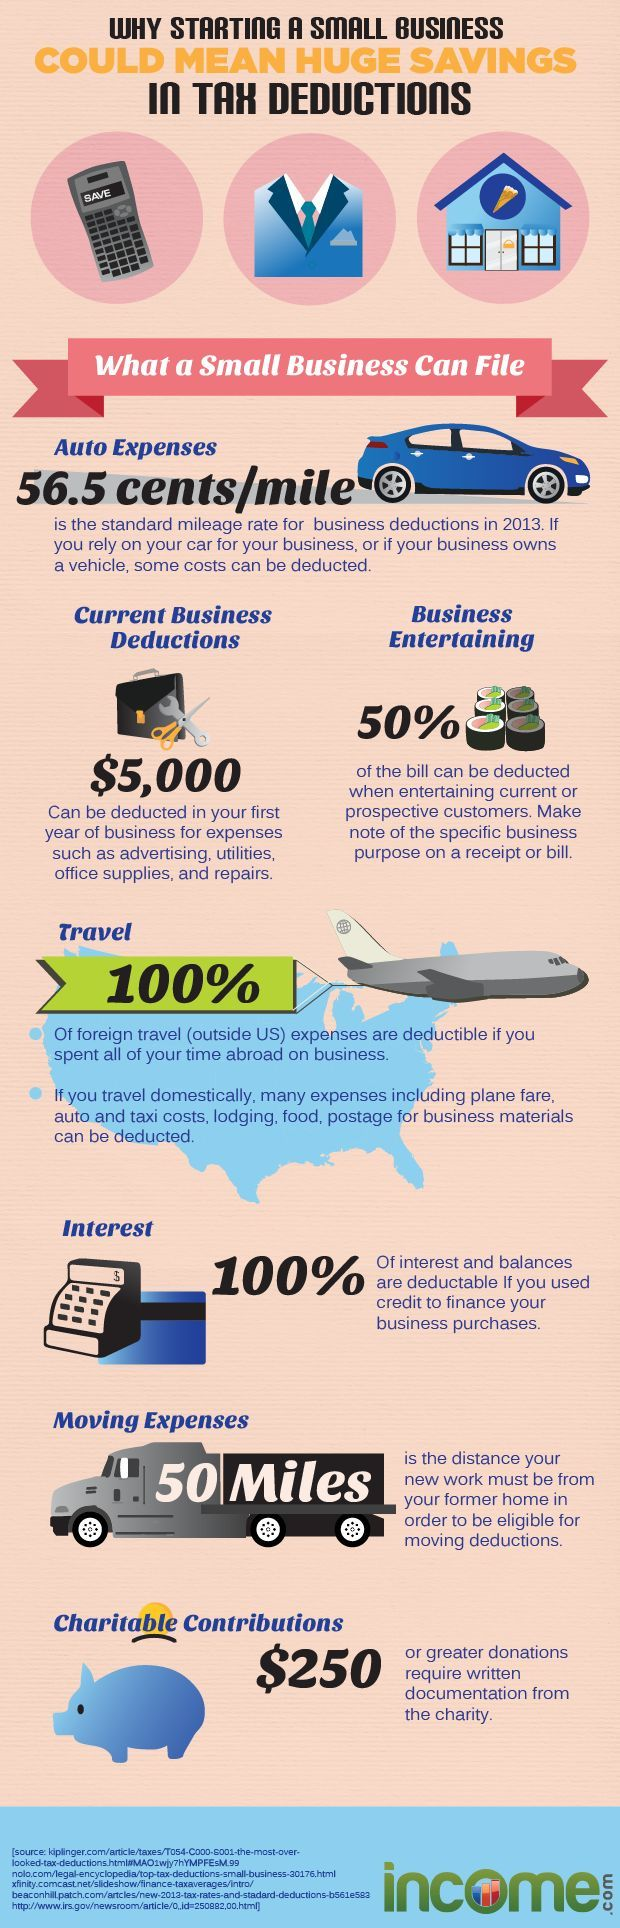 Minimize Small-Business Startup Costs With These Tax Tips [Infographic]   income.com business tips #succeed #business